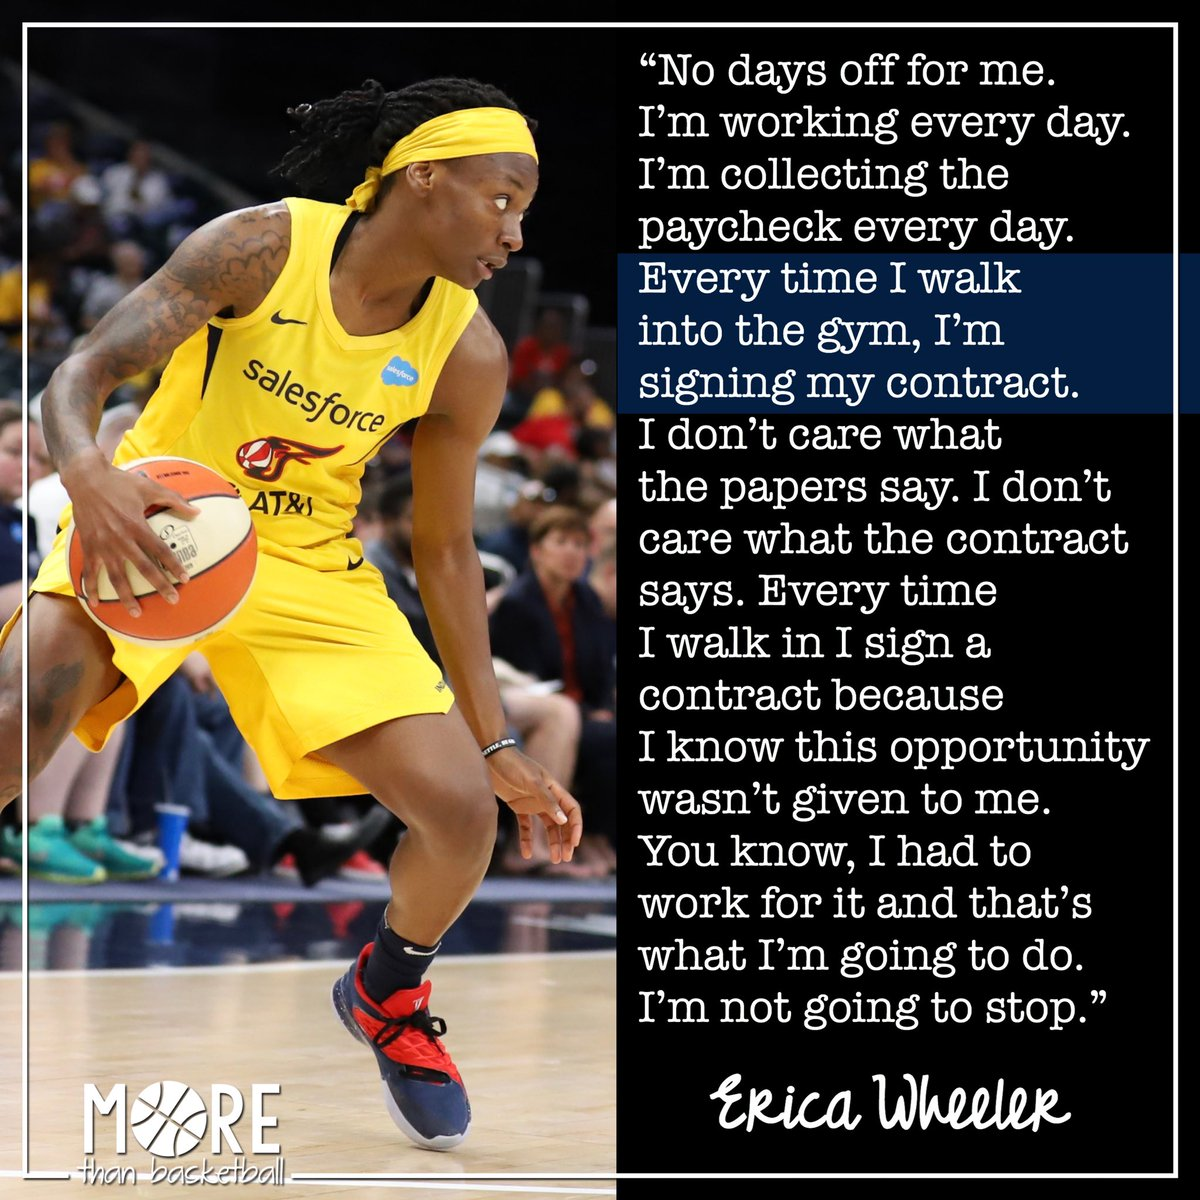 I love @EWeezy_For3eezy's commitment to herself, her game, and her team. She is third in the WNBA in assists (40) and is currently an impressive 55.7% in FG%. . #fever20 #indianafever #allforlove